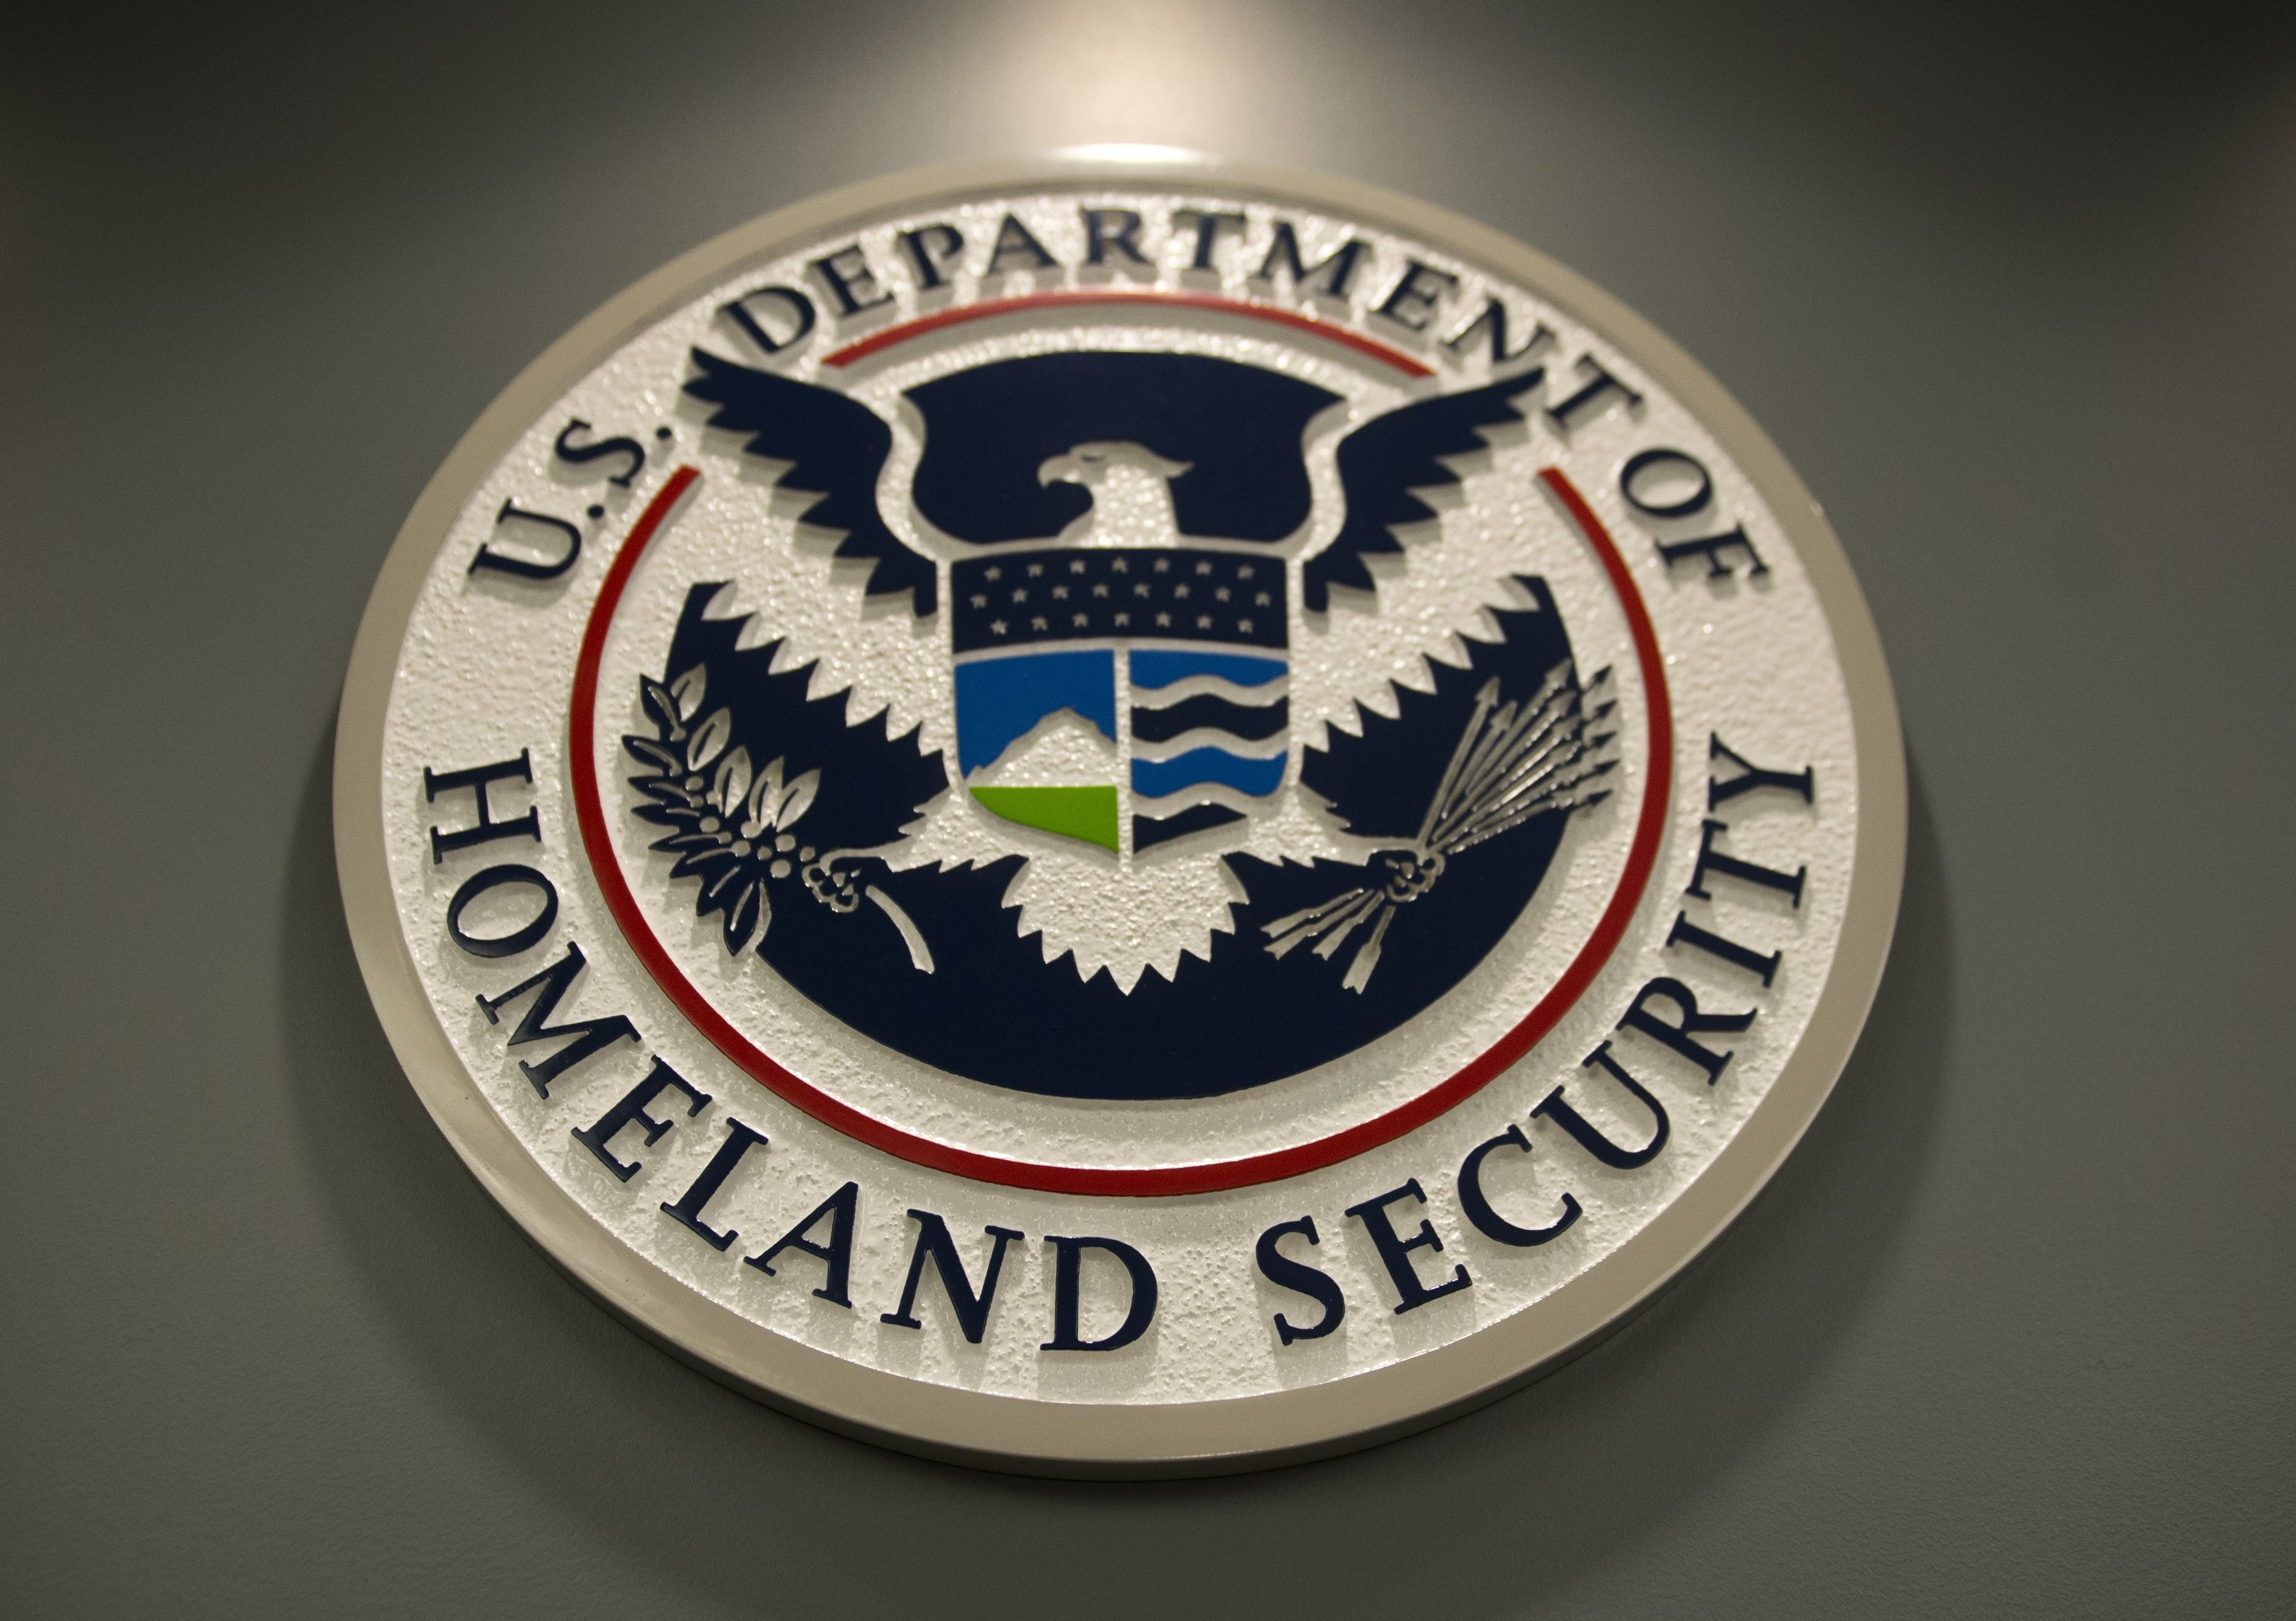 The logo of the Department of Homeland Security is seen at US Immigration and Customs Enforcement in Washington, DC, February 25, 2015. House democrats see the GOP's security strategy as a political blunder. Photo by Saul Loeb/AFP/Getty Images.